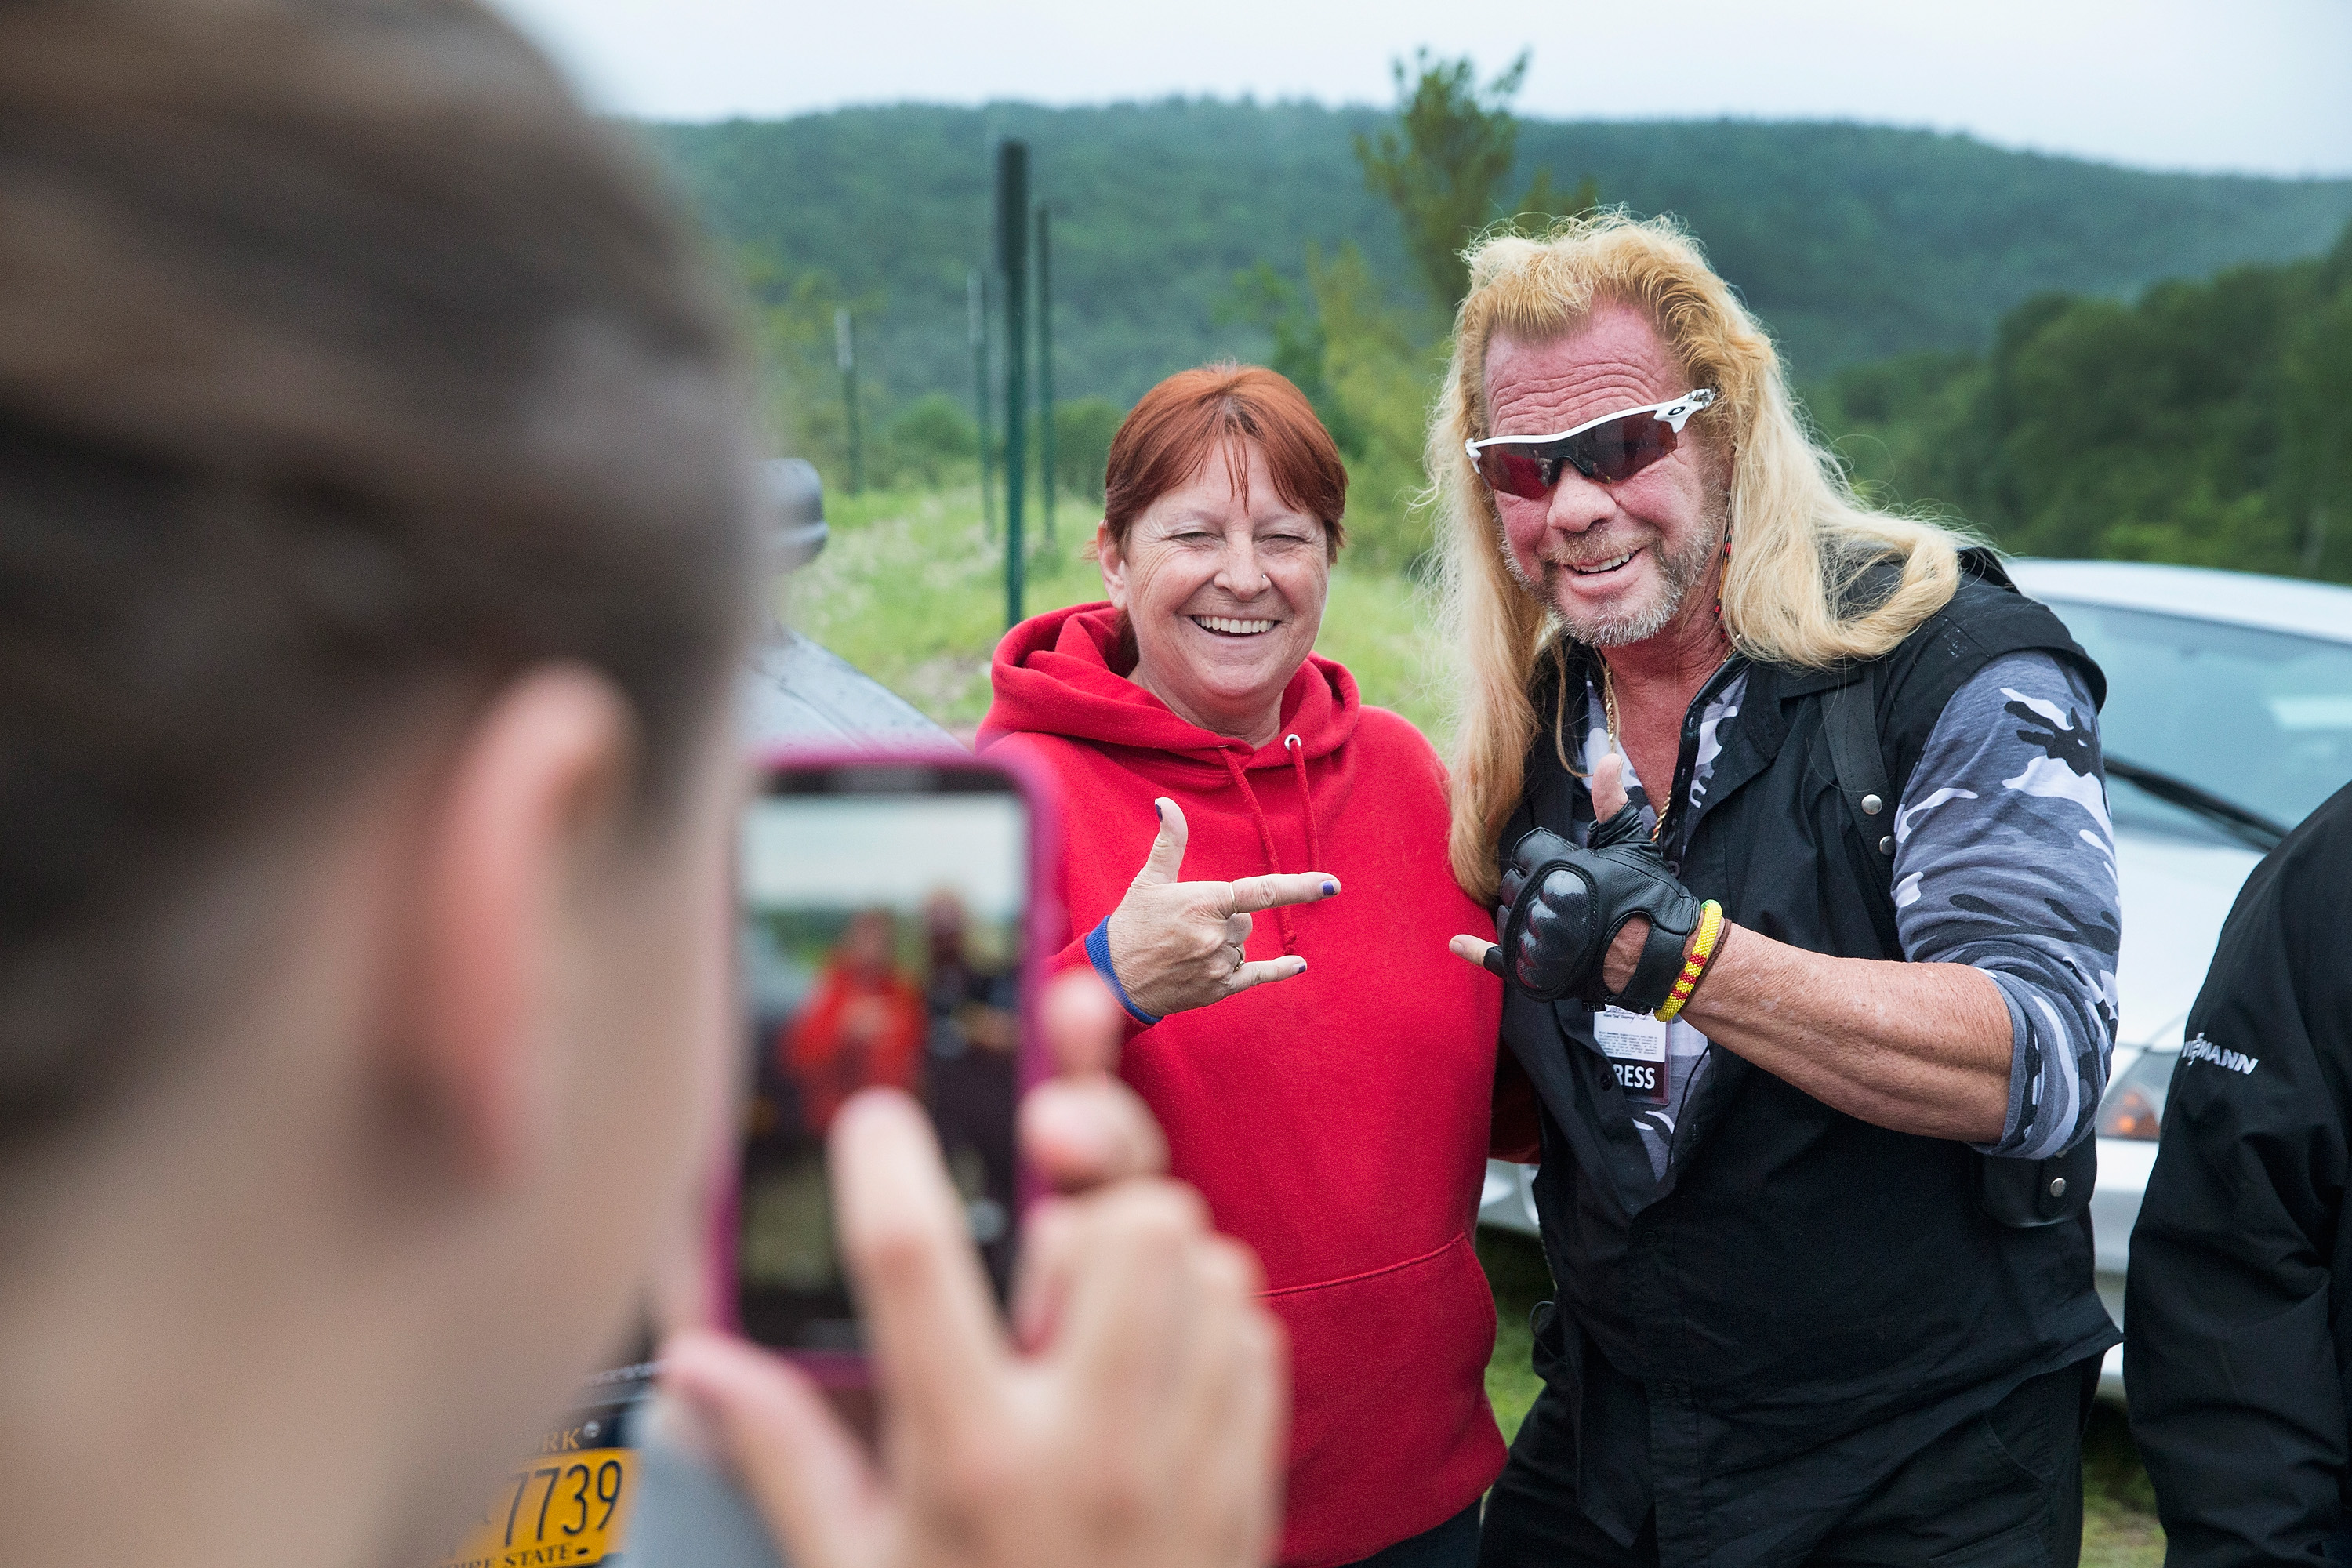 Beth Chapman isn't Expected to Recover